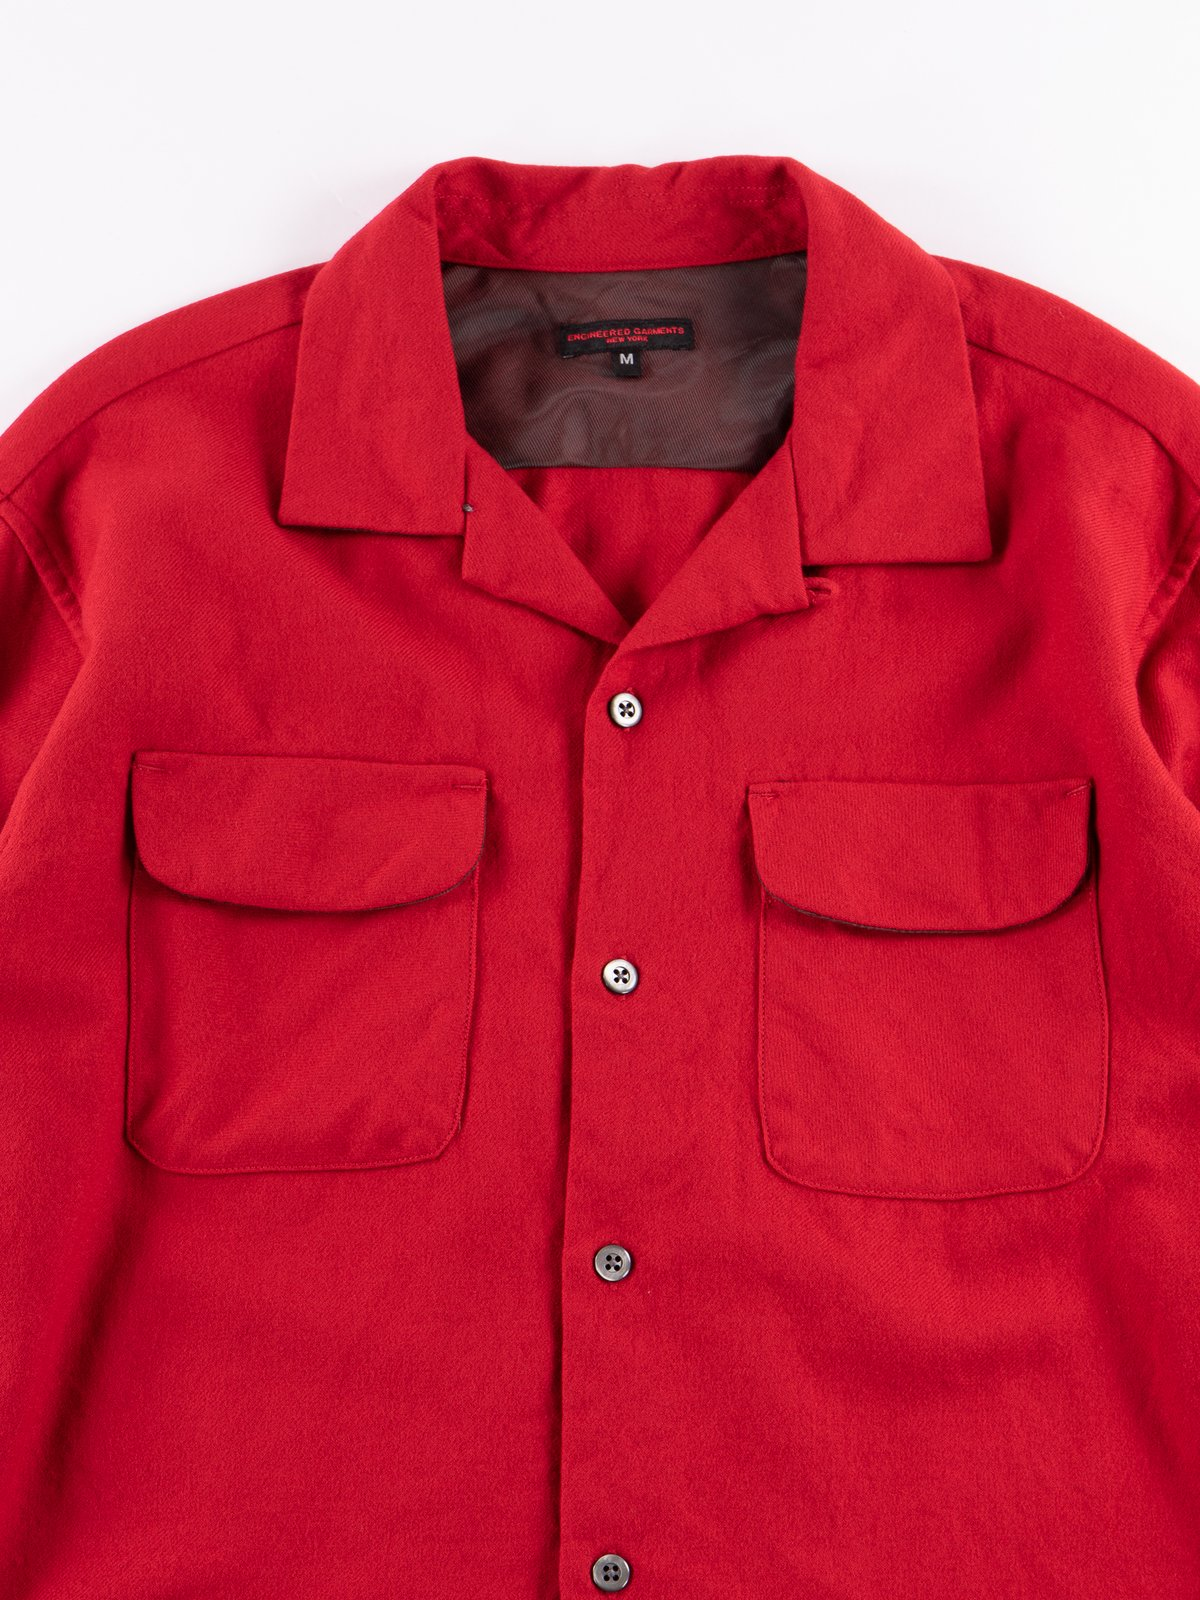 Red Worsted Wool Flannel Classic Shirt - Image 3